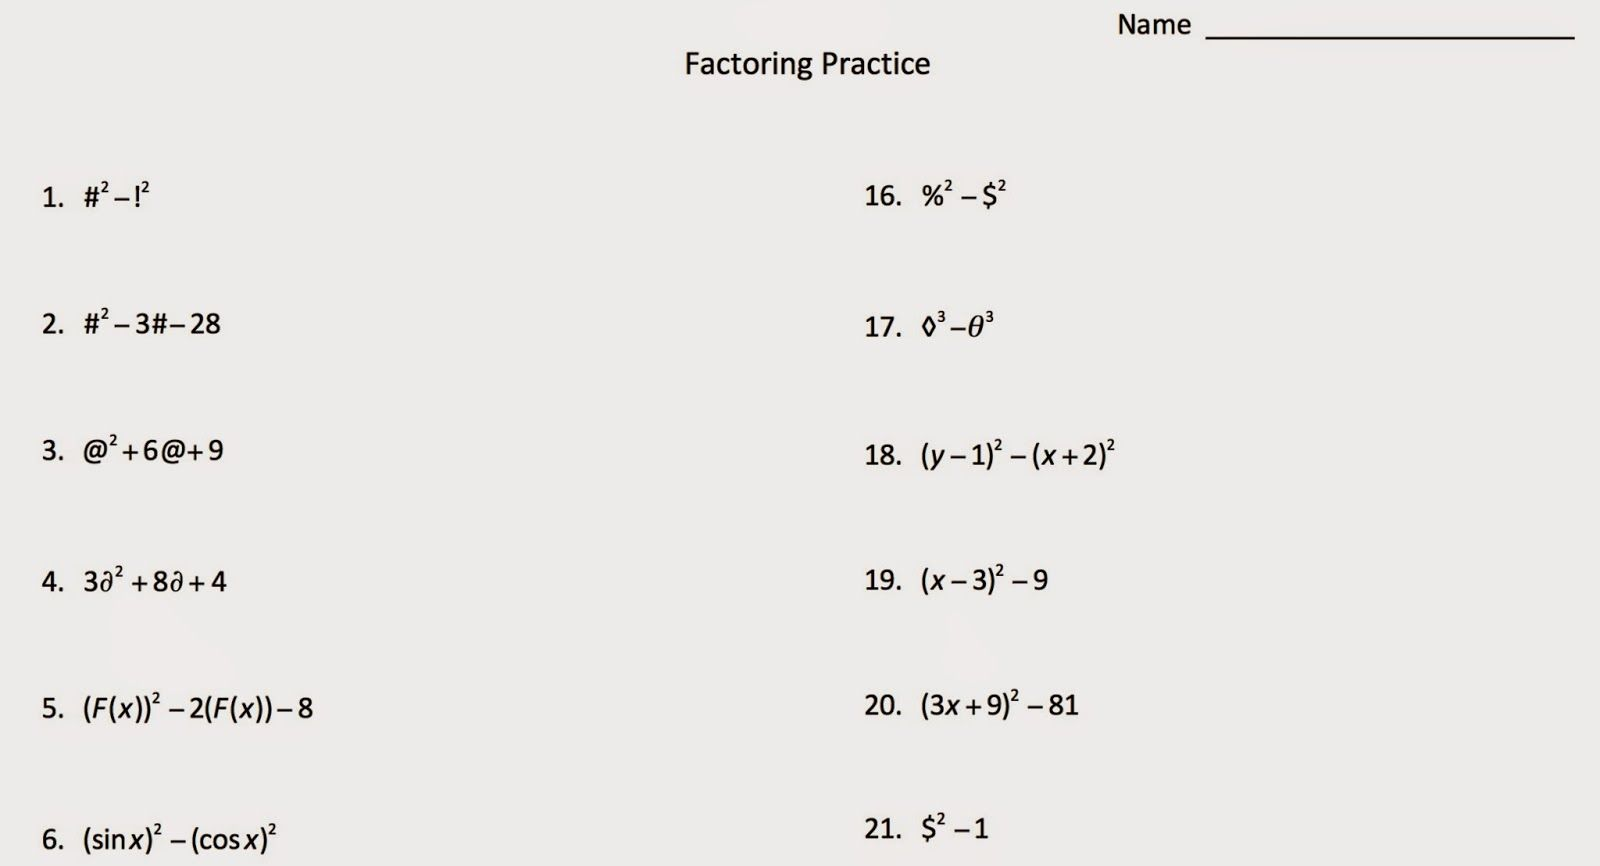 worksheet Factoring Distributive Property Worksheet mrs e teaches math factoring with symbols free worksheet to help students see